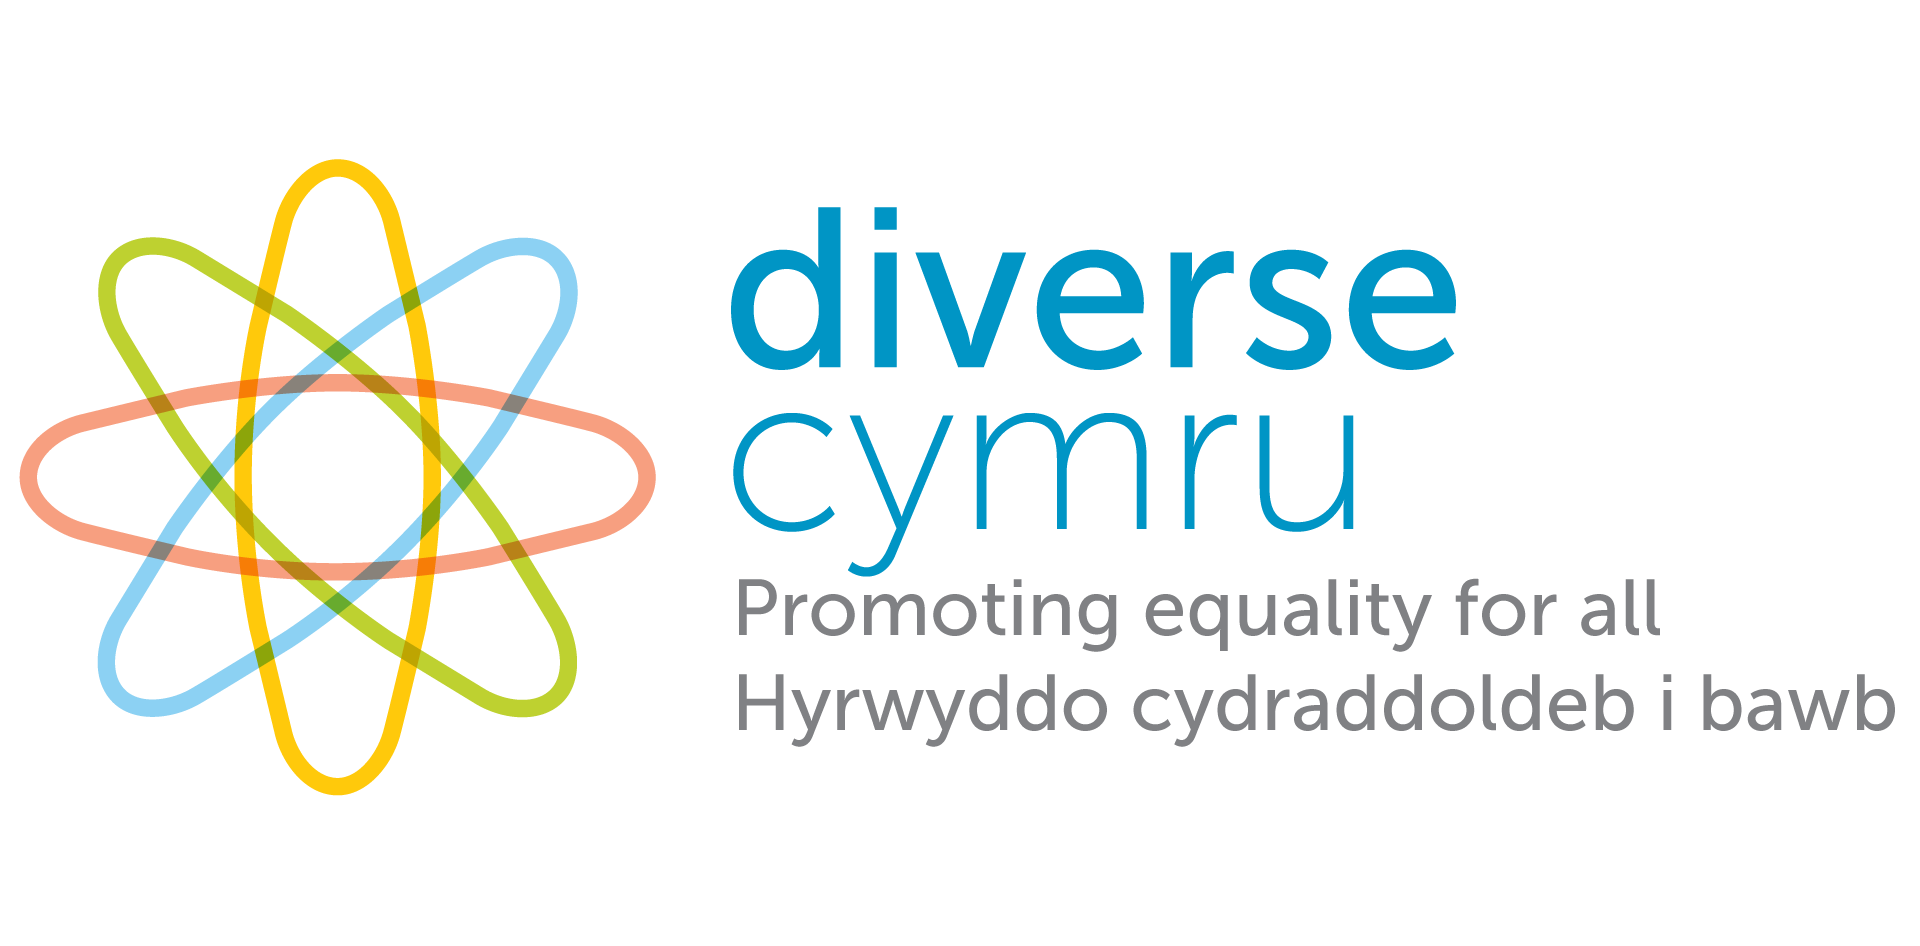 - The opportunity to meet organisations from within the creative industries, and provide advice on where the industry advertises and promotes its employment and training opportunities.This will include information on the new Diverse Cymru Film and TV Bursary, supported by Creative Skillset. This bursary will offer small amounts of funding, support and mentoring in Wales for people from diverse groups who already have some experience in the industry, and wish to further develop their skills and knowledge.